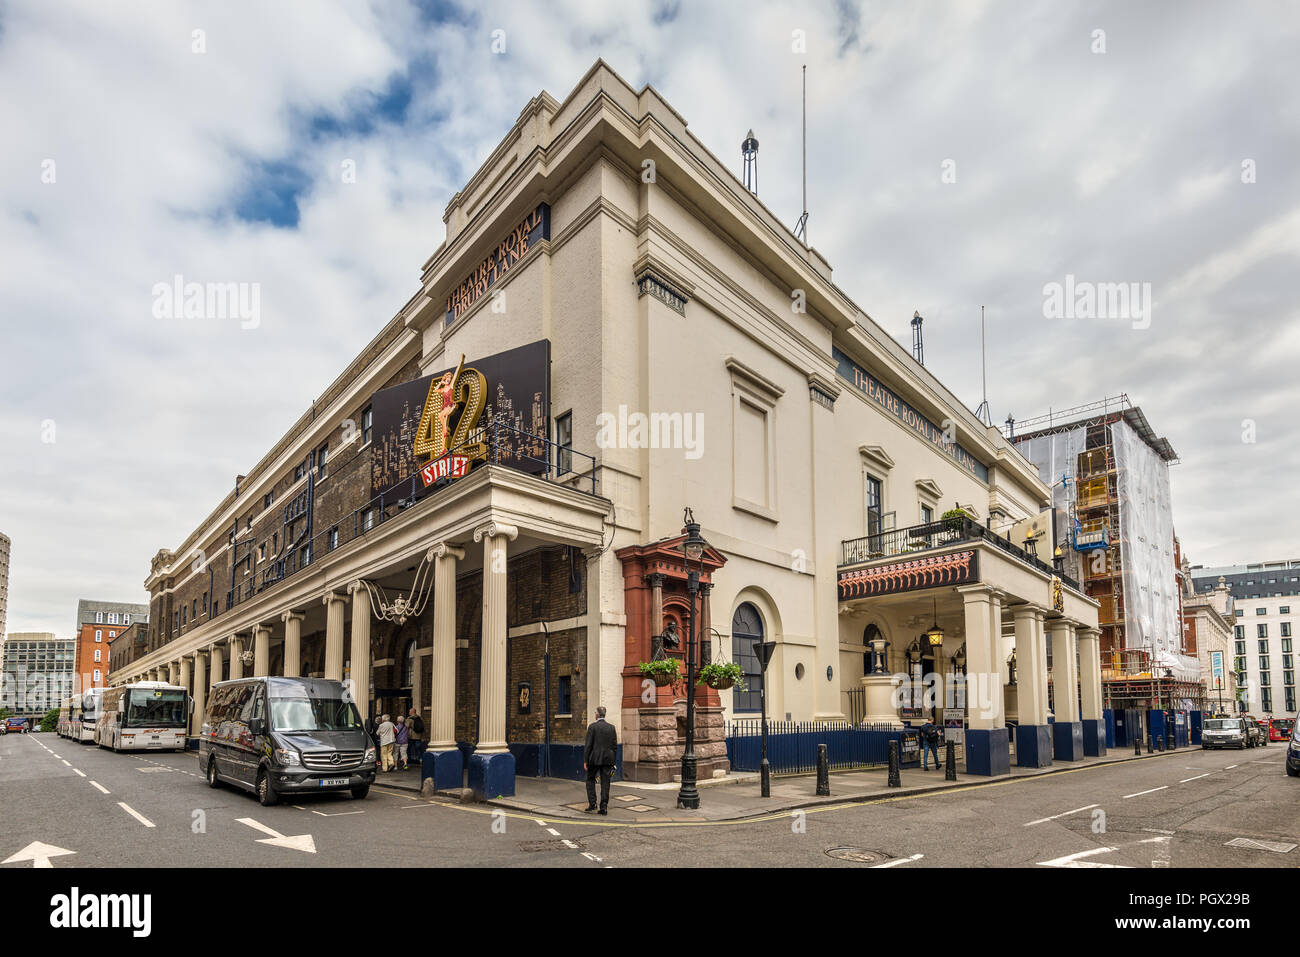 London, UK - May 23, 2017: Historic Theatre Royal Drury Lane at Covent Garden in London England, United Kingdom. - Stock Image